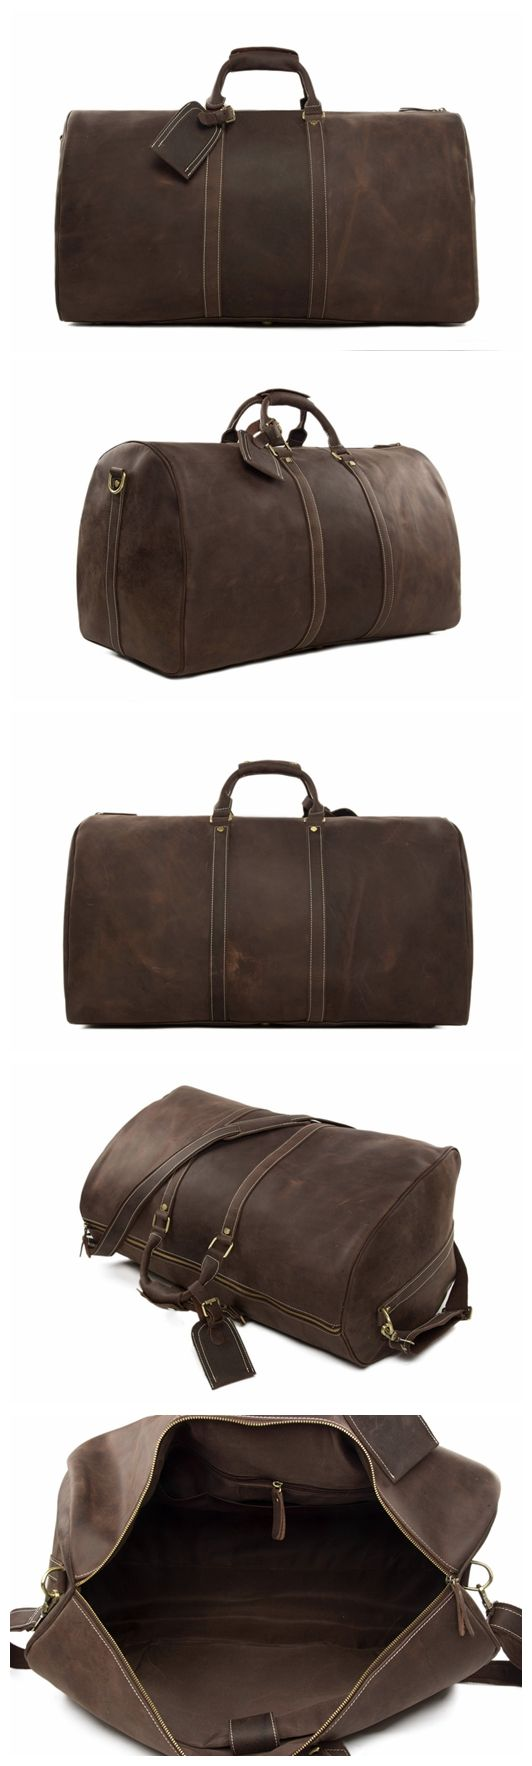 "Men's Leather Holdall Duffel Weekender Travel Bag Leather Overnight Bag Model Number: 12027 Dimensions: 23.6""L x 11.8""W x 13""H / 60cm(L) x 30cm(W) x 33cm(H) Weight: 5lb / 2.3kg Hardware: Brass Hardwar"